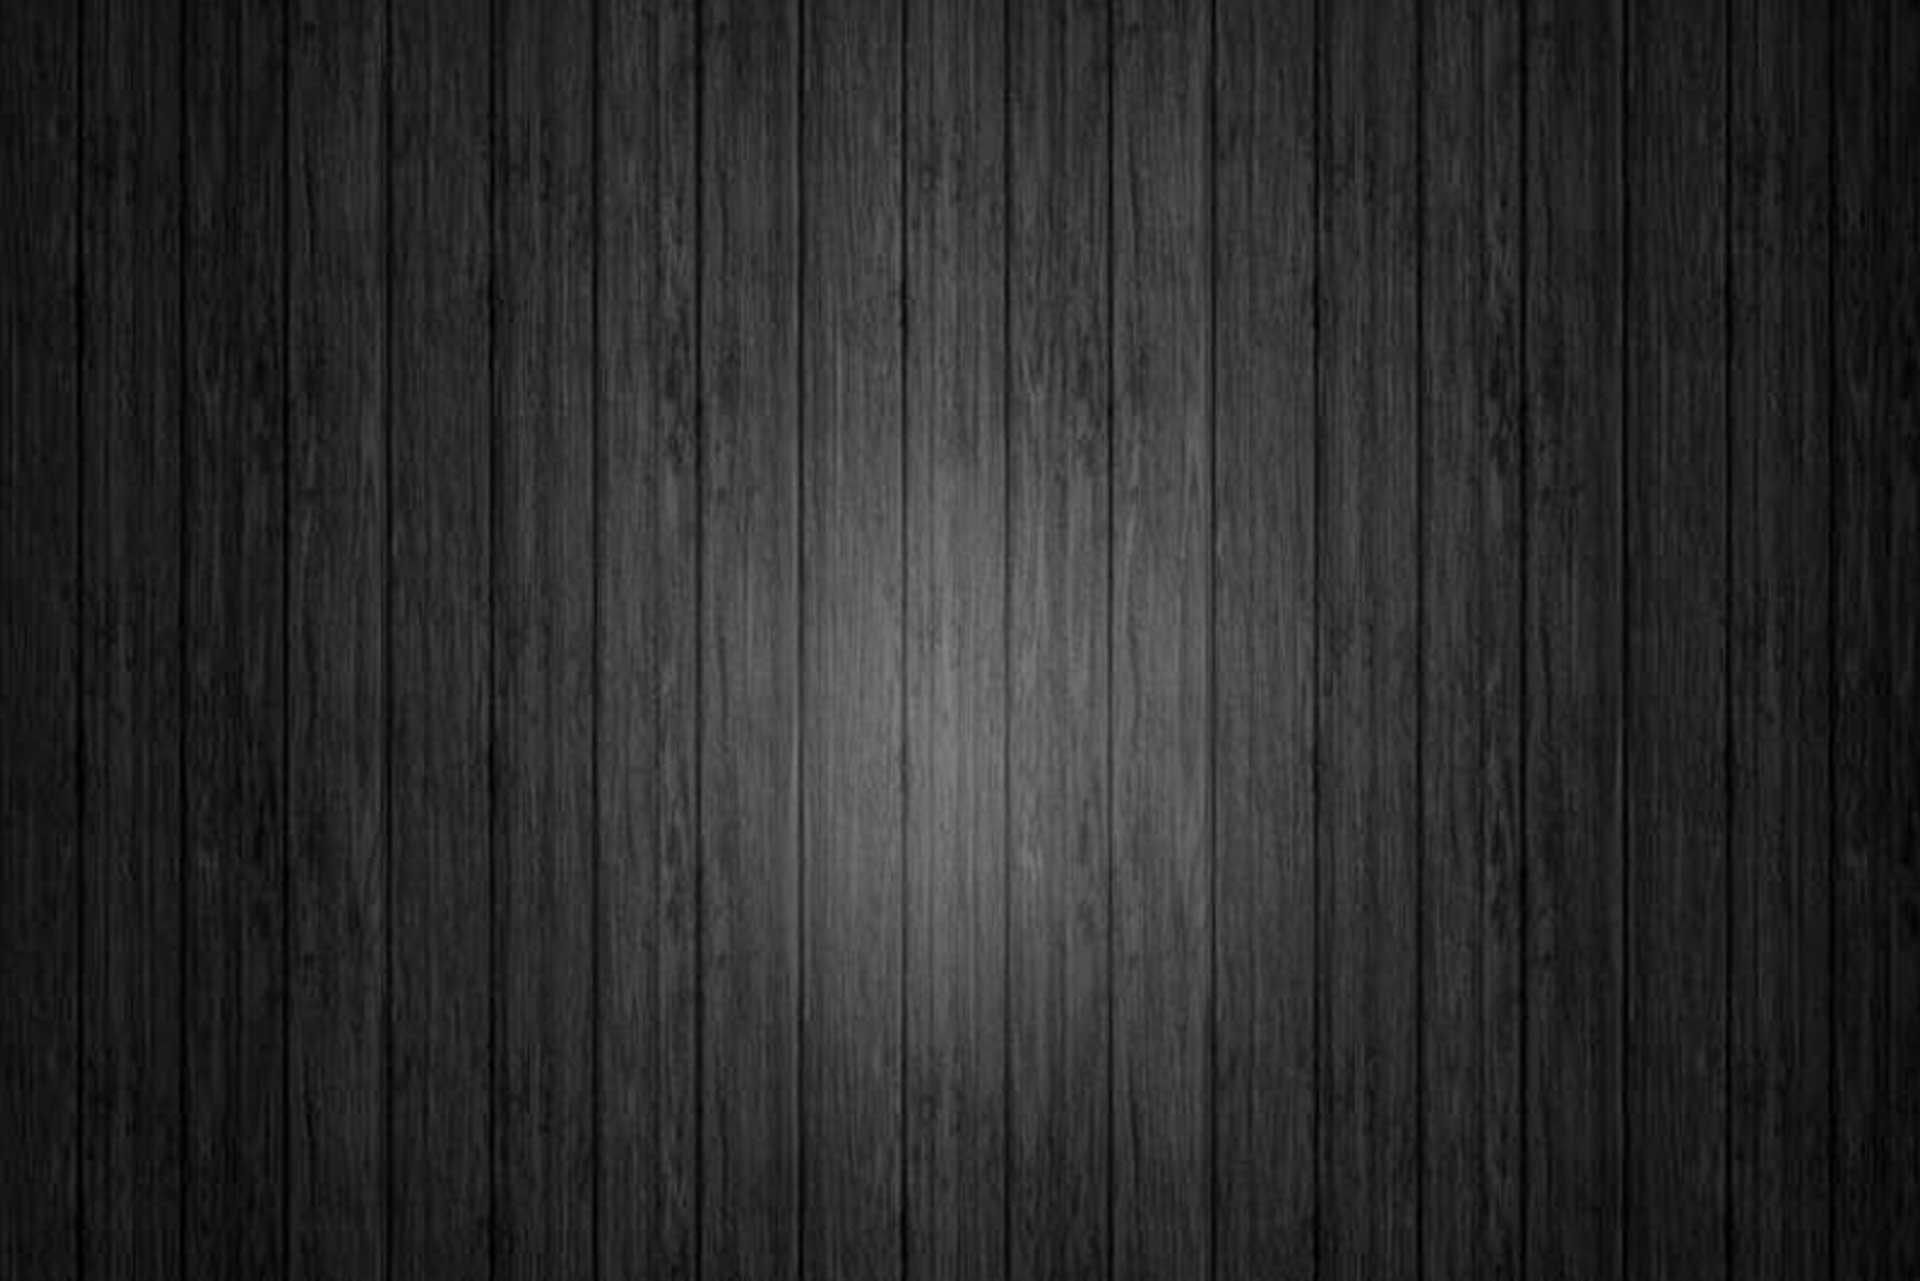 liquor barrel background